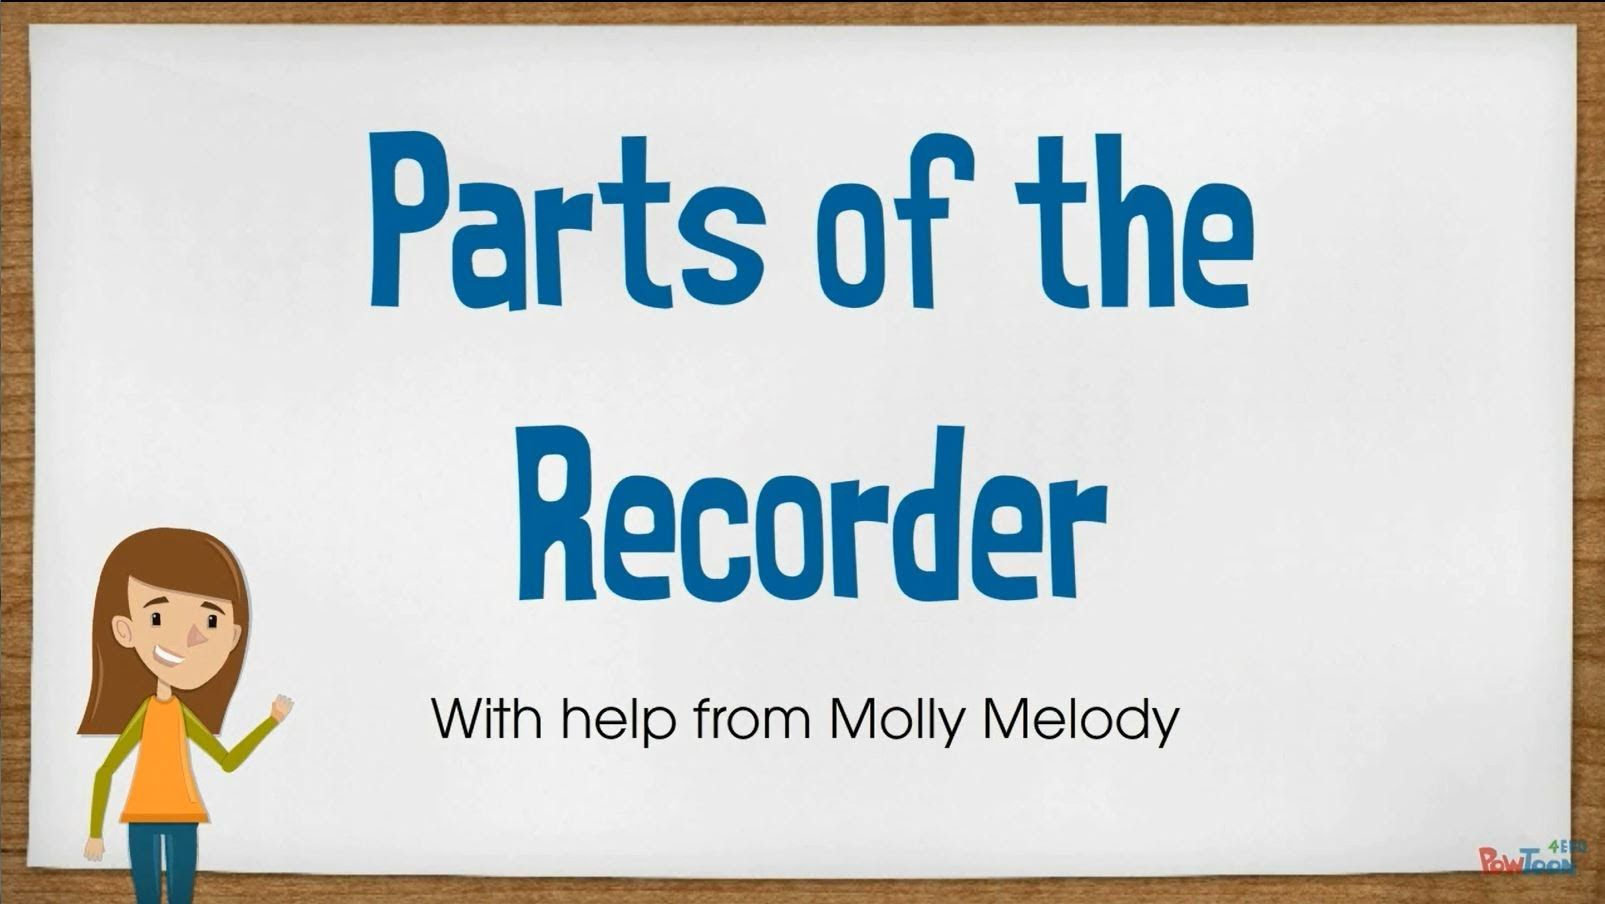 A Really Cute Video That Explains Parts Of The Recorder